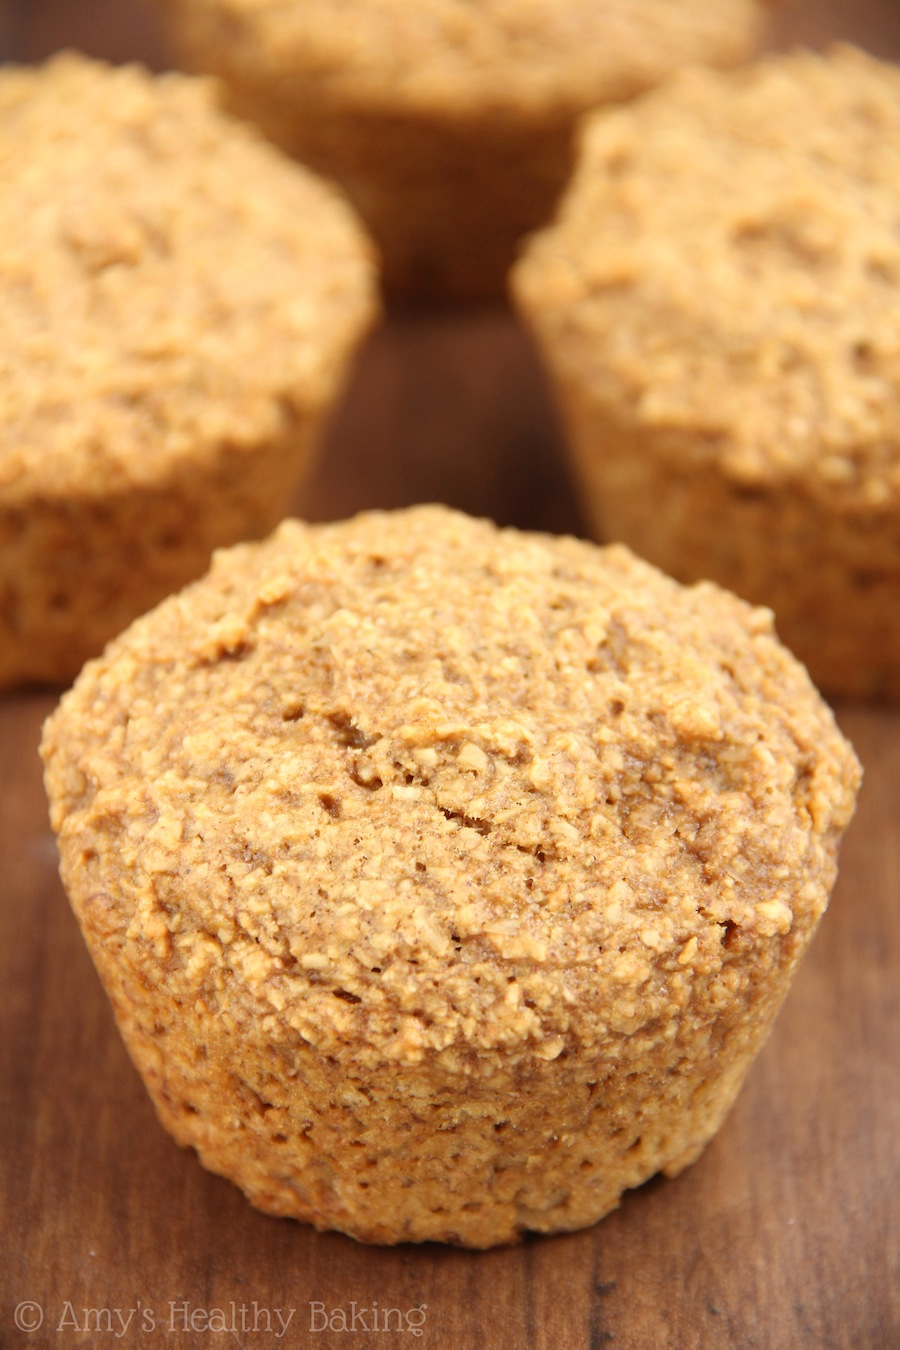 An easy recipe for moist Banana Bran Muffins. The perfect skinny & clean-eating breakfast treat!